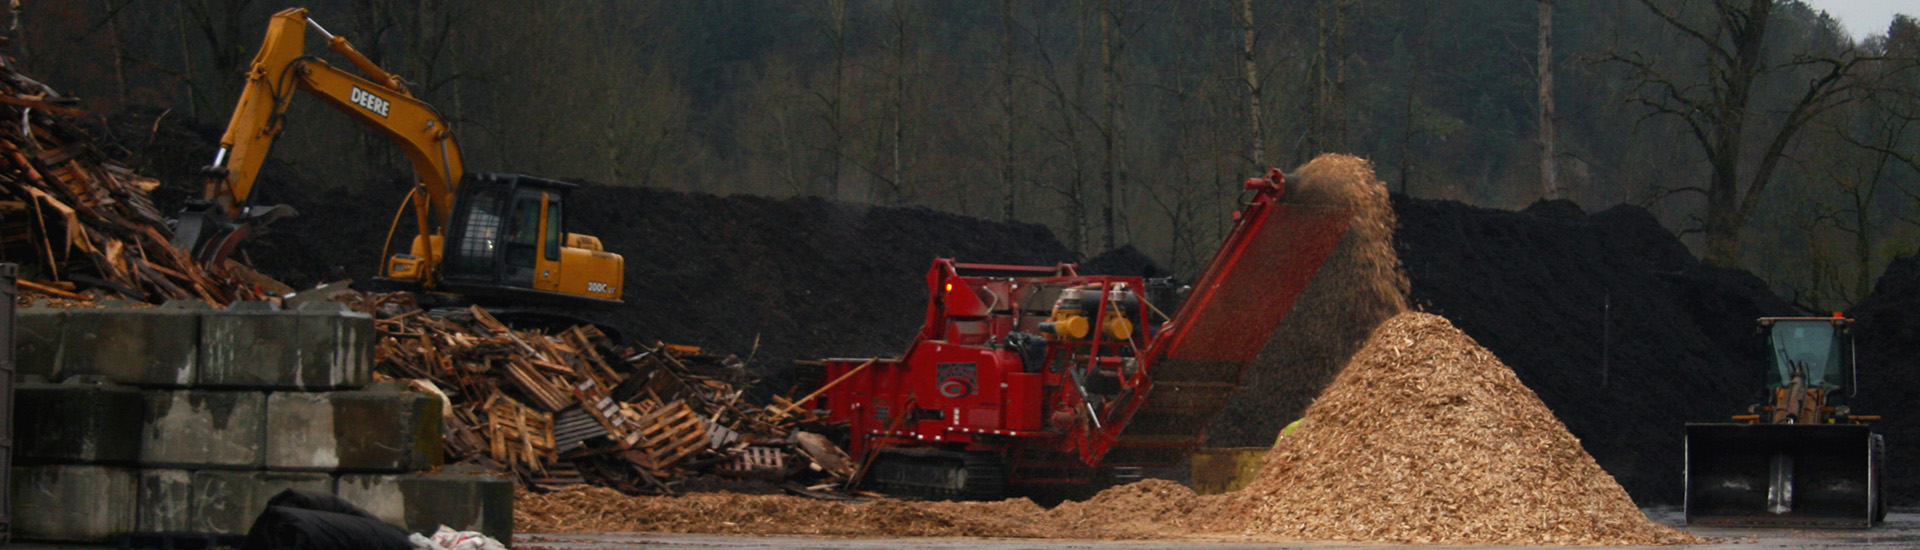 grinding woodwaste at Denbow